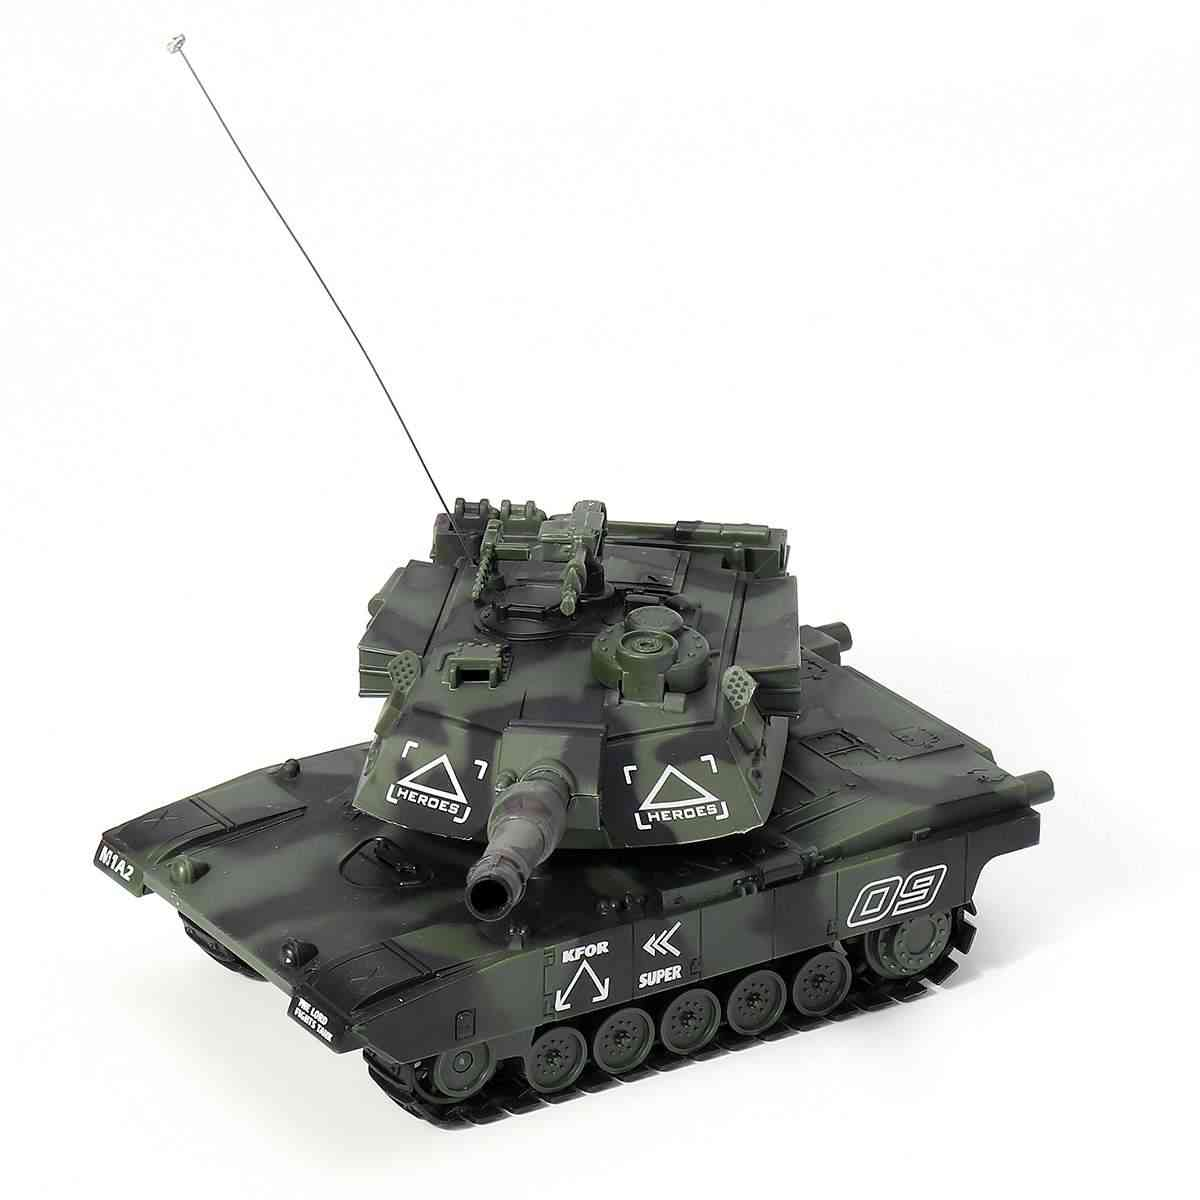 Tactical War Tank Vehicle With Remote Control, Shoot Bullets Toy For